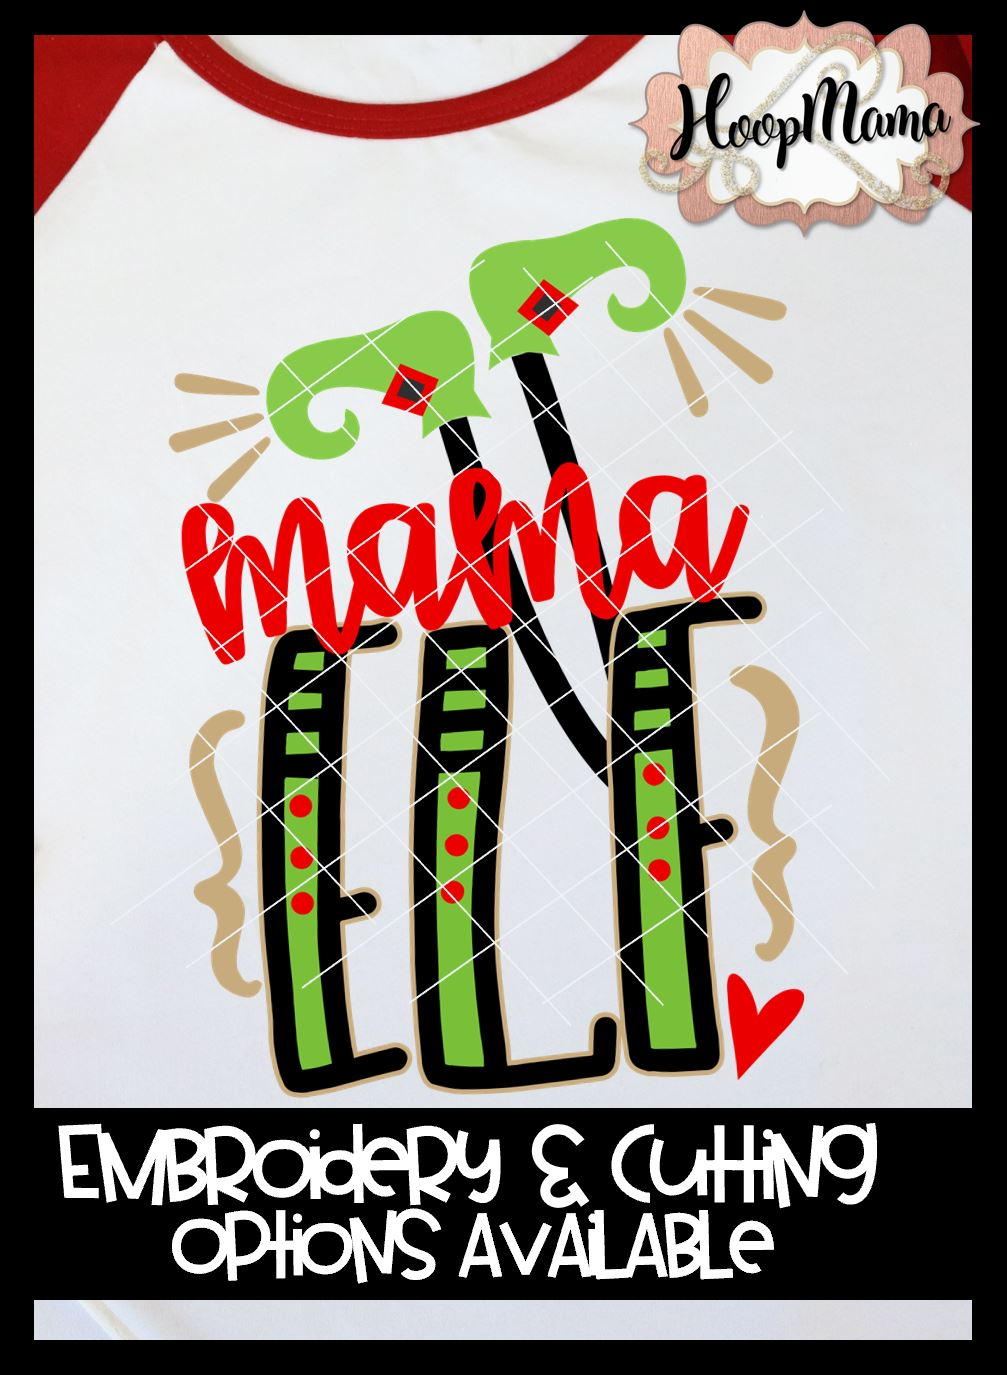 Mama elf embroidery and cutting options hoopmama jpg 1007x1375 Mama elf d92f70b4c